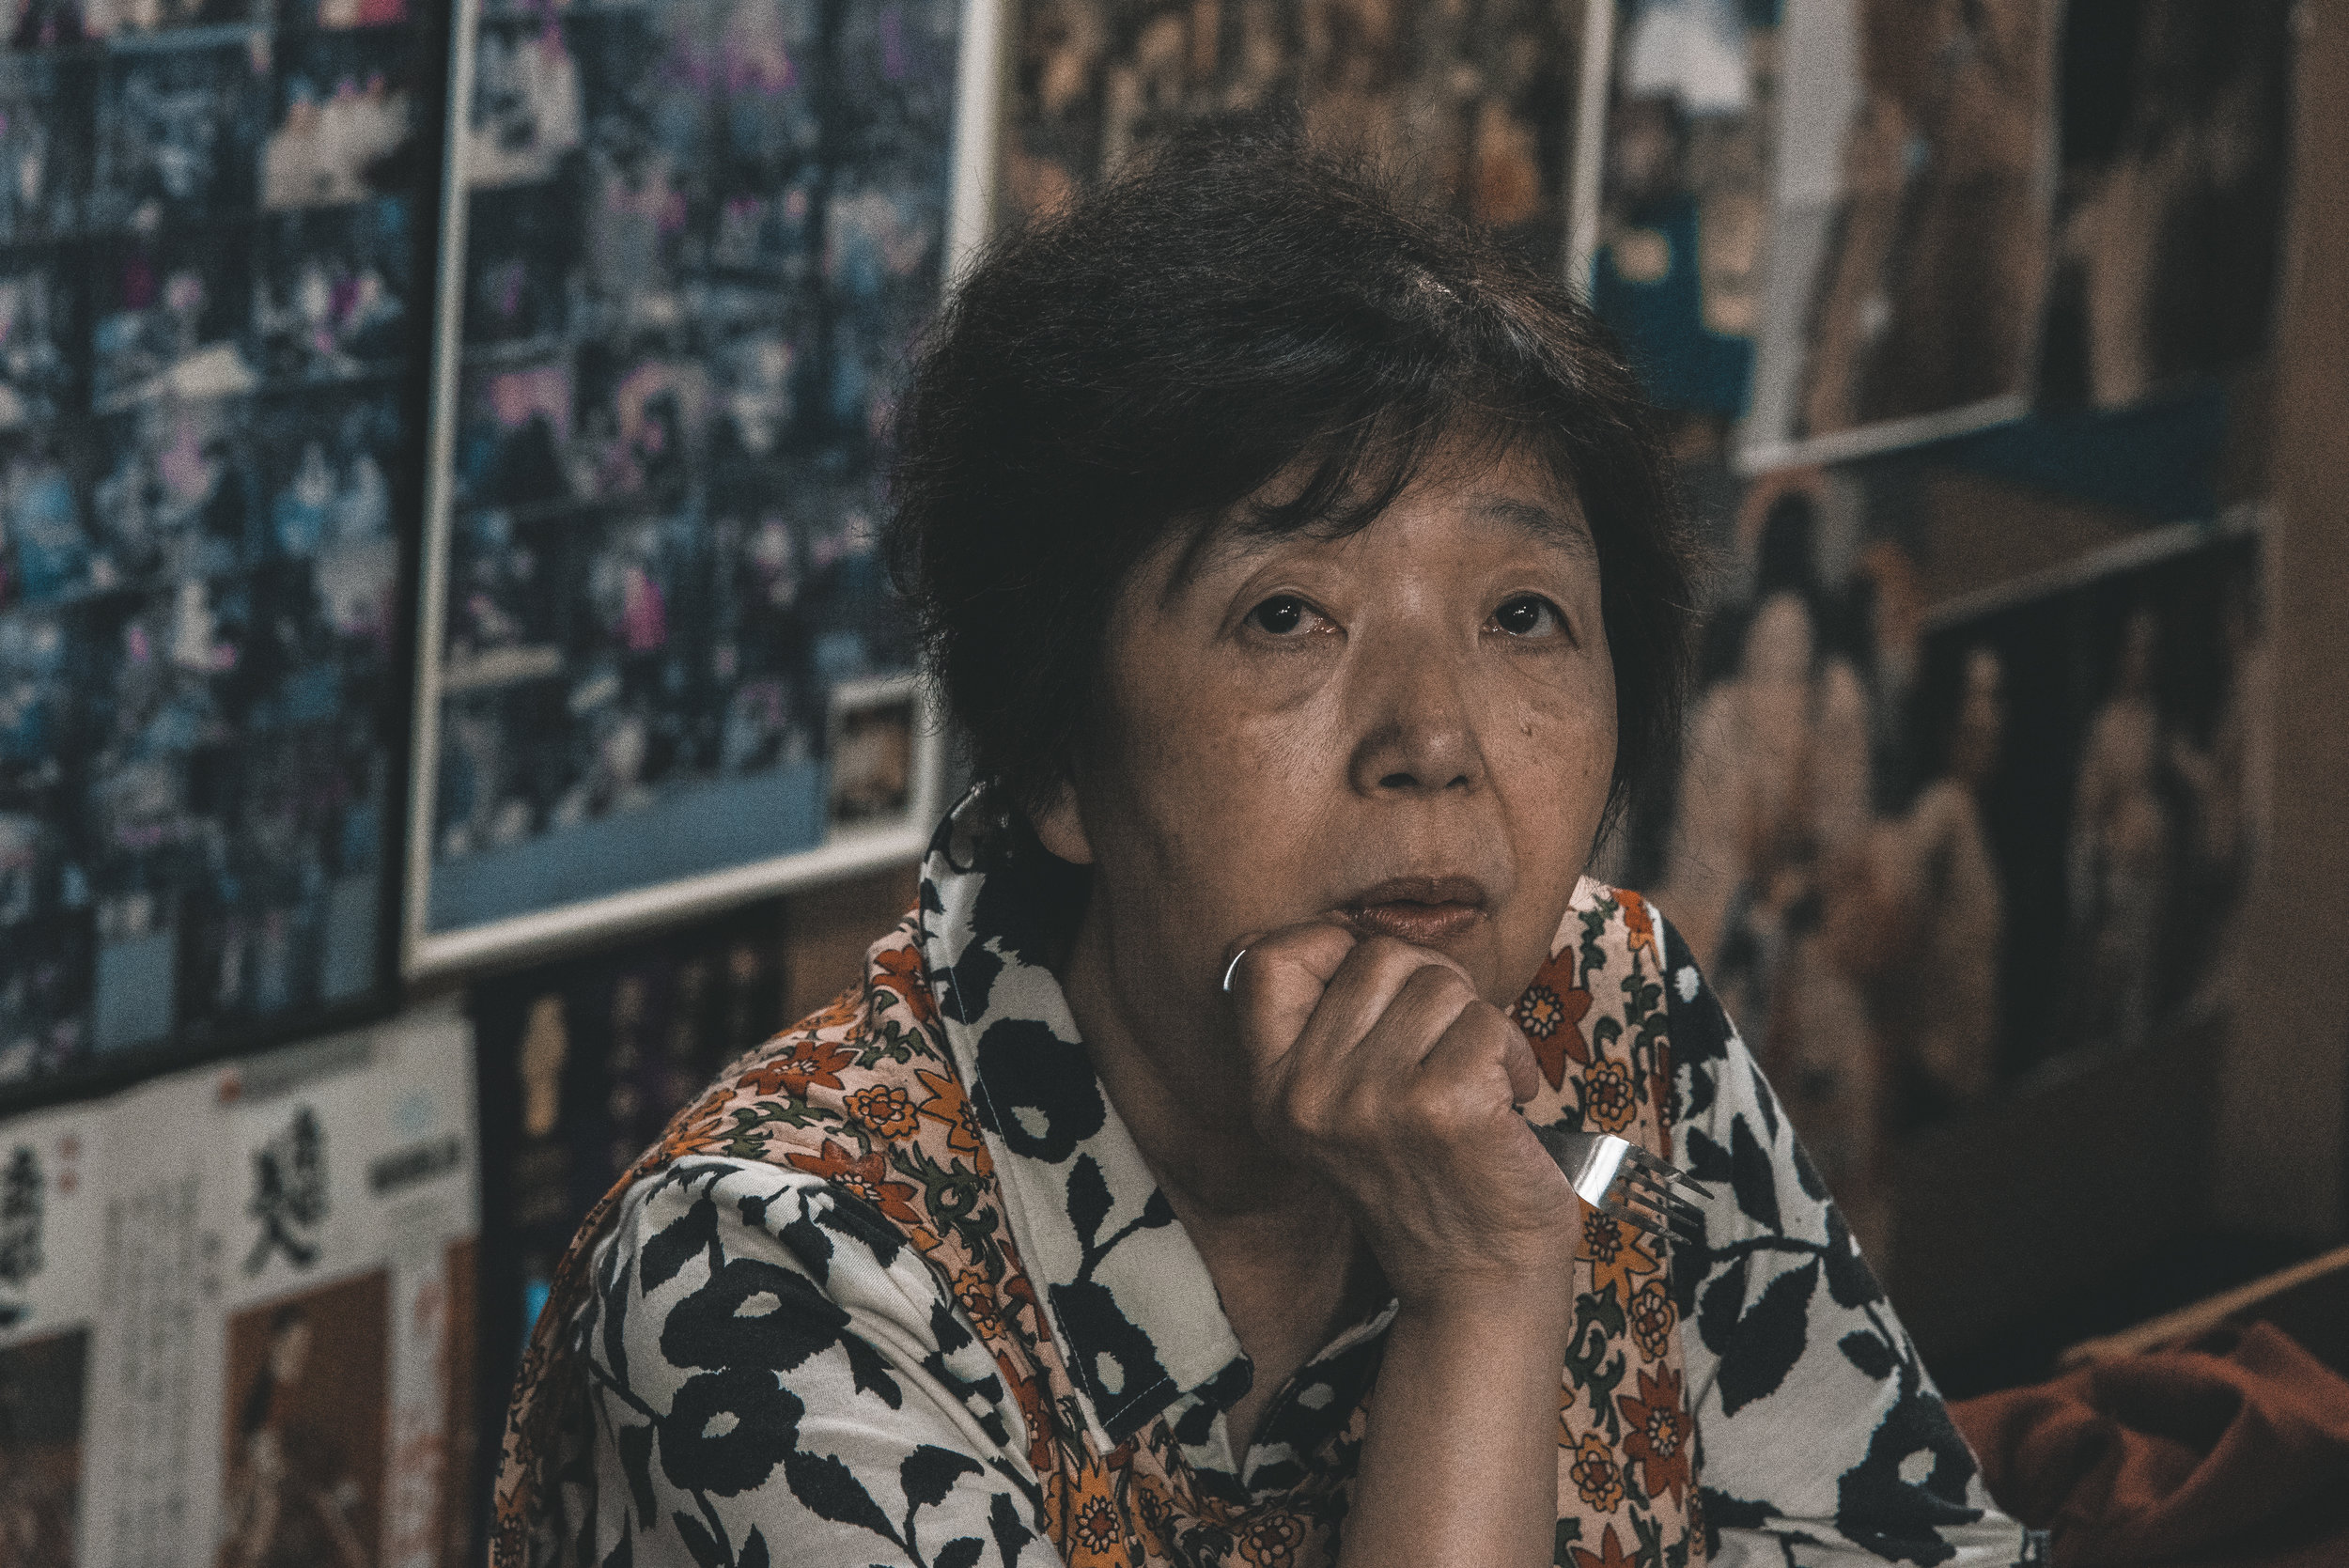 'Megumi was working at the hotel Ichikawa as an accountant back then. I saw her walking on the street one day and it was love at first sight. I was 21 and she was 17, we dated for a year and a half and got married in November 1975, then my father died in December. We had our first daughter Kotomi the following year and our second daughter Yayoi 3 years later.'